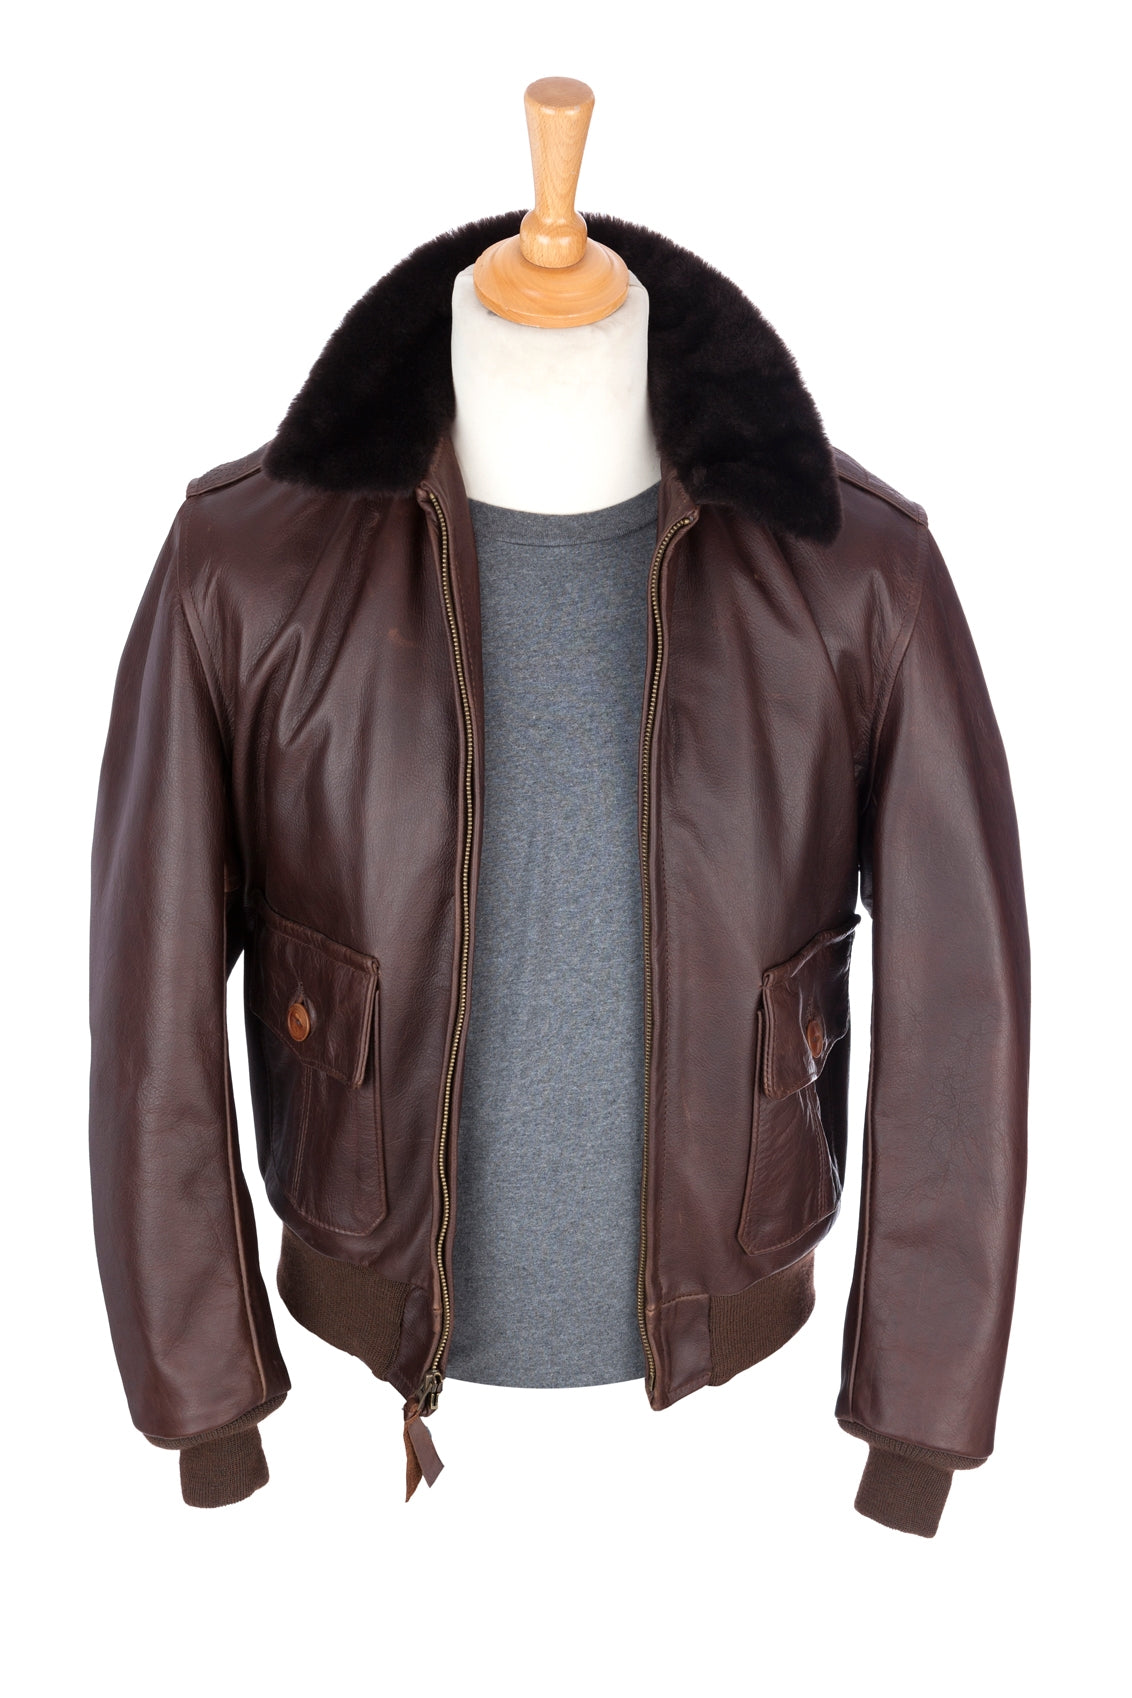 Regent and Aero Leather - Bomber Jacket - Brown Steerhide - Regent Tailoring